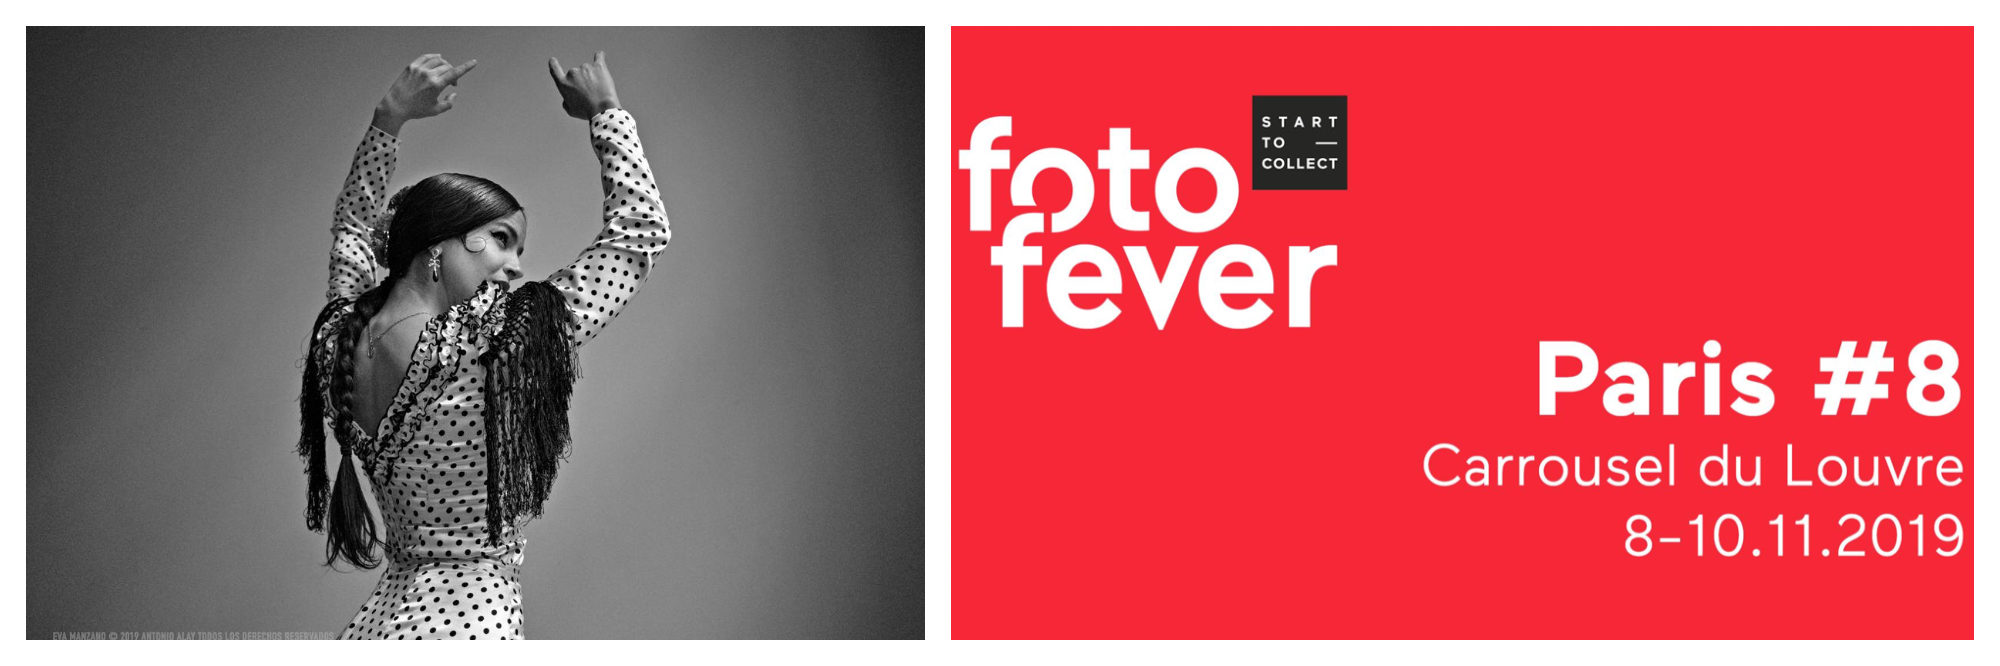 A black and white photo of a flamenco dancer with her arms raised from Paris Photo fair this November (left) and a rest poster for Fotofever (right).